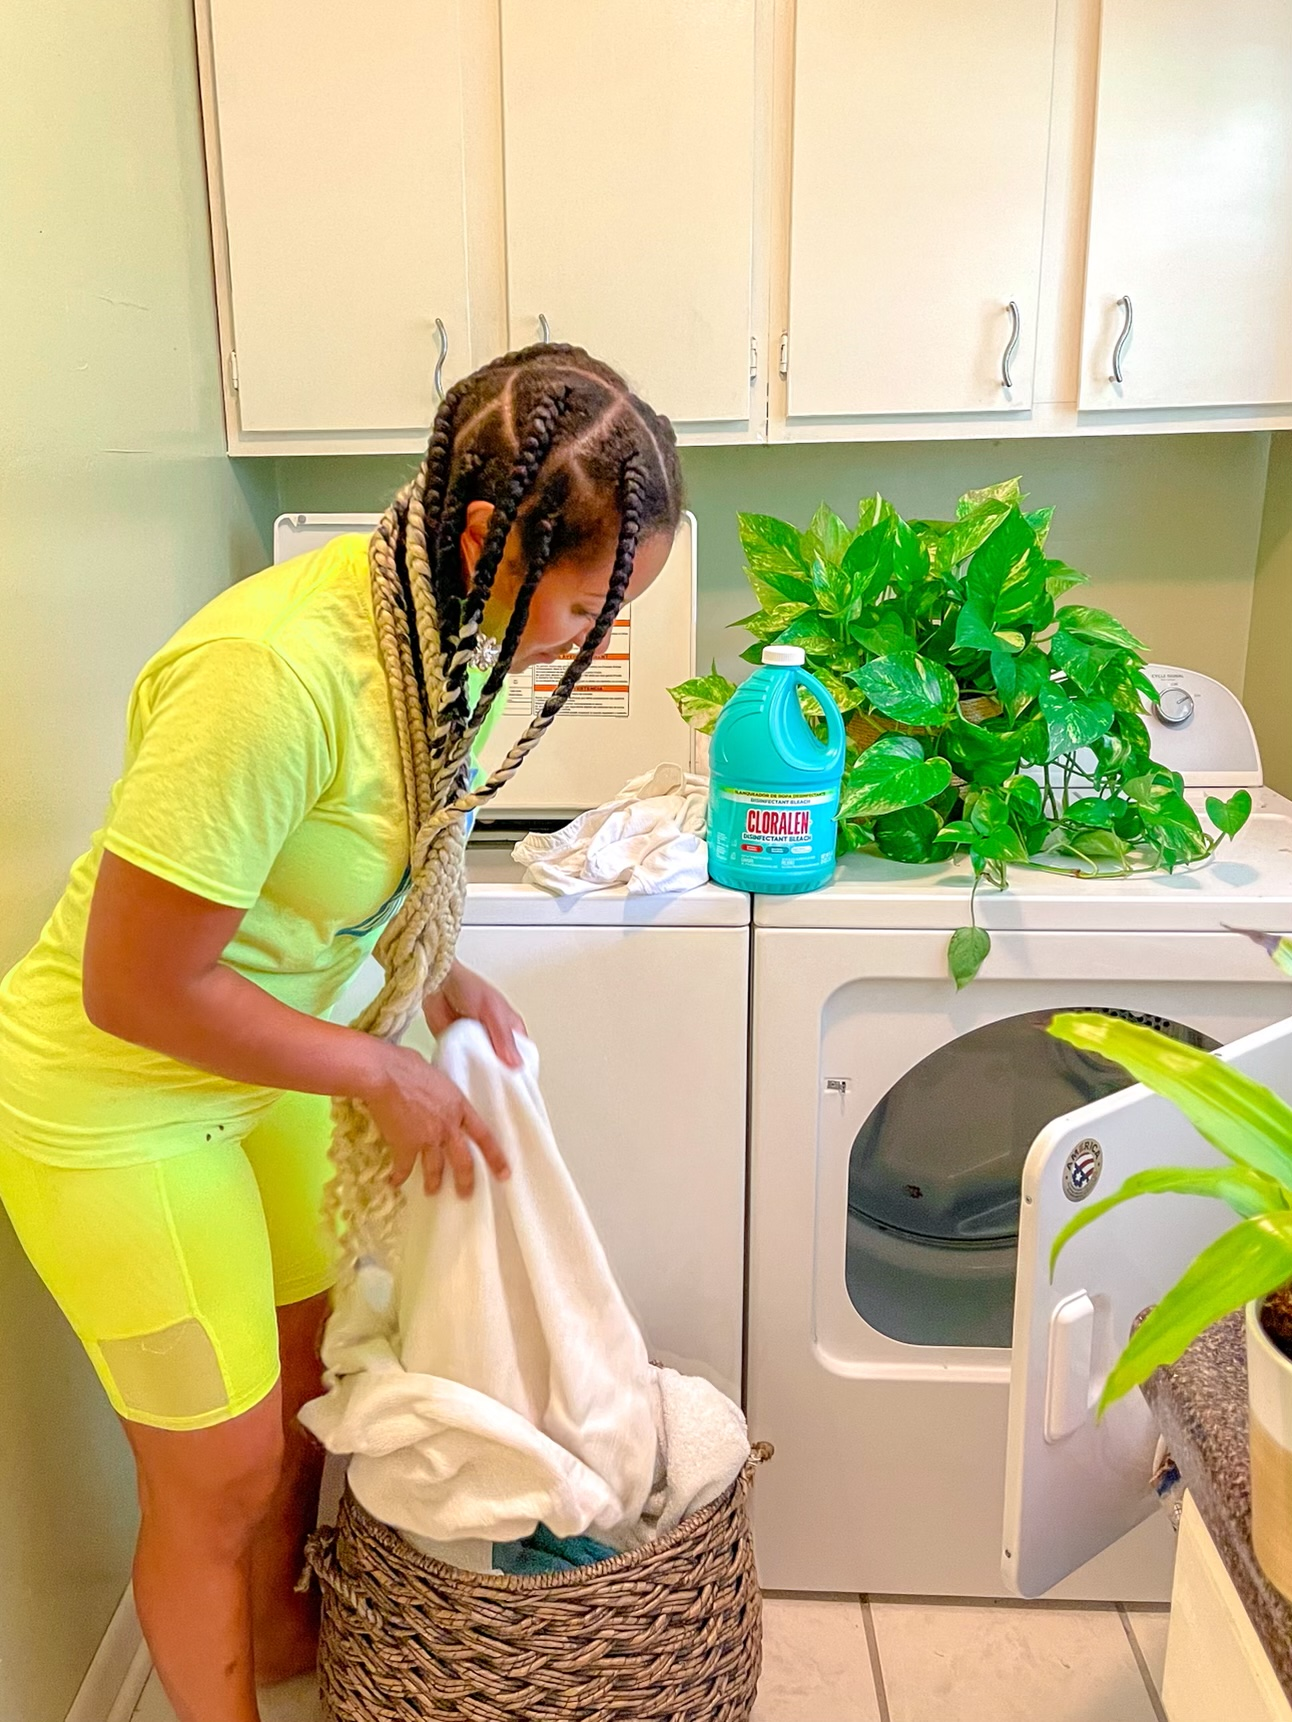 CLORALEN mom cleaning